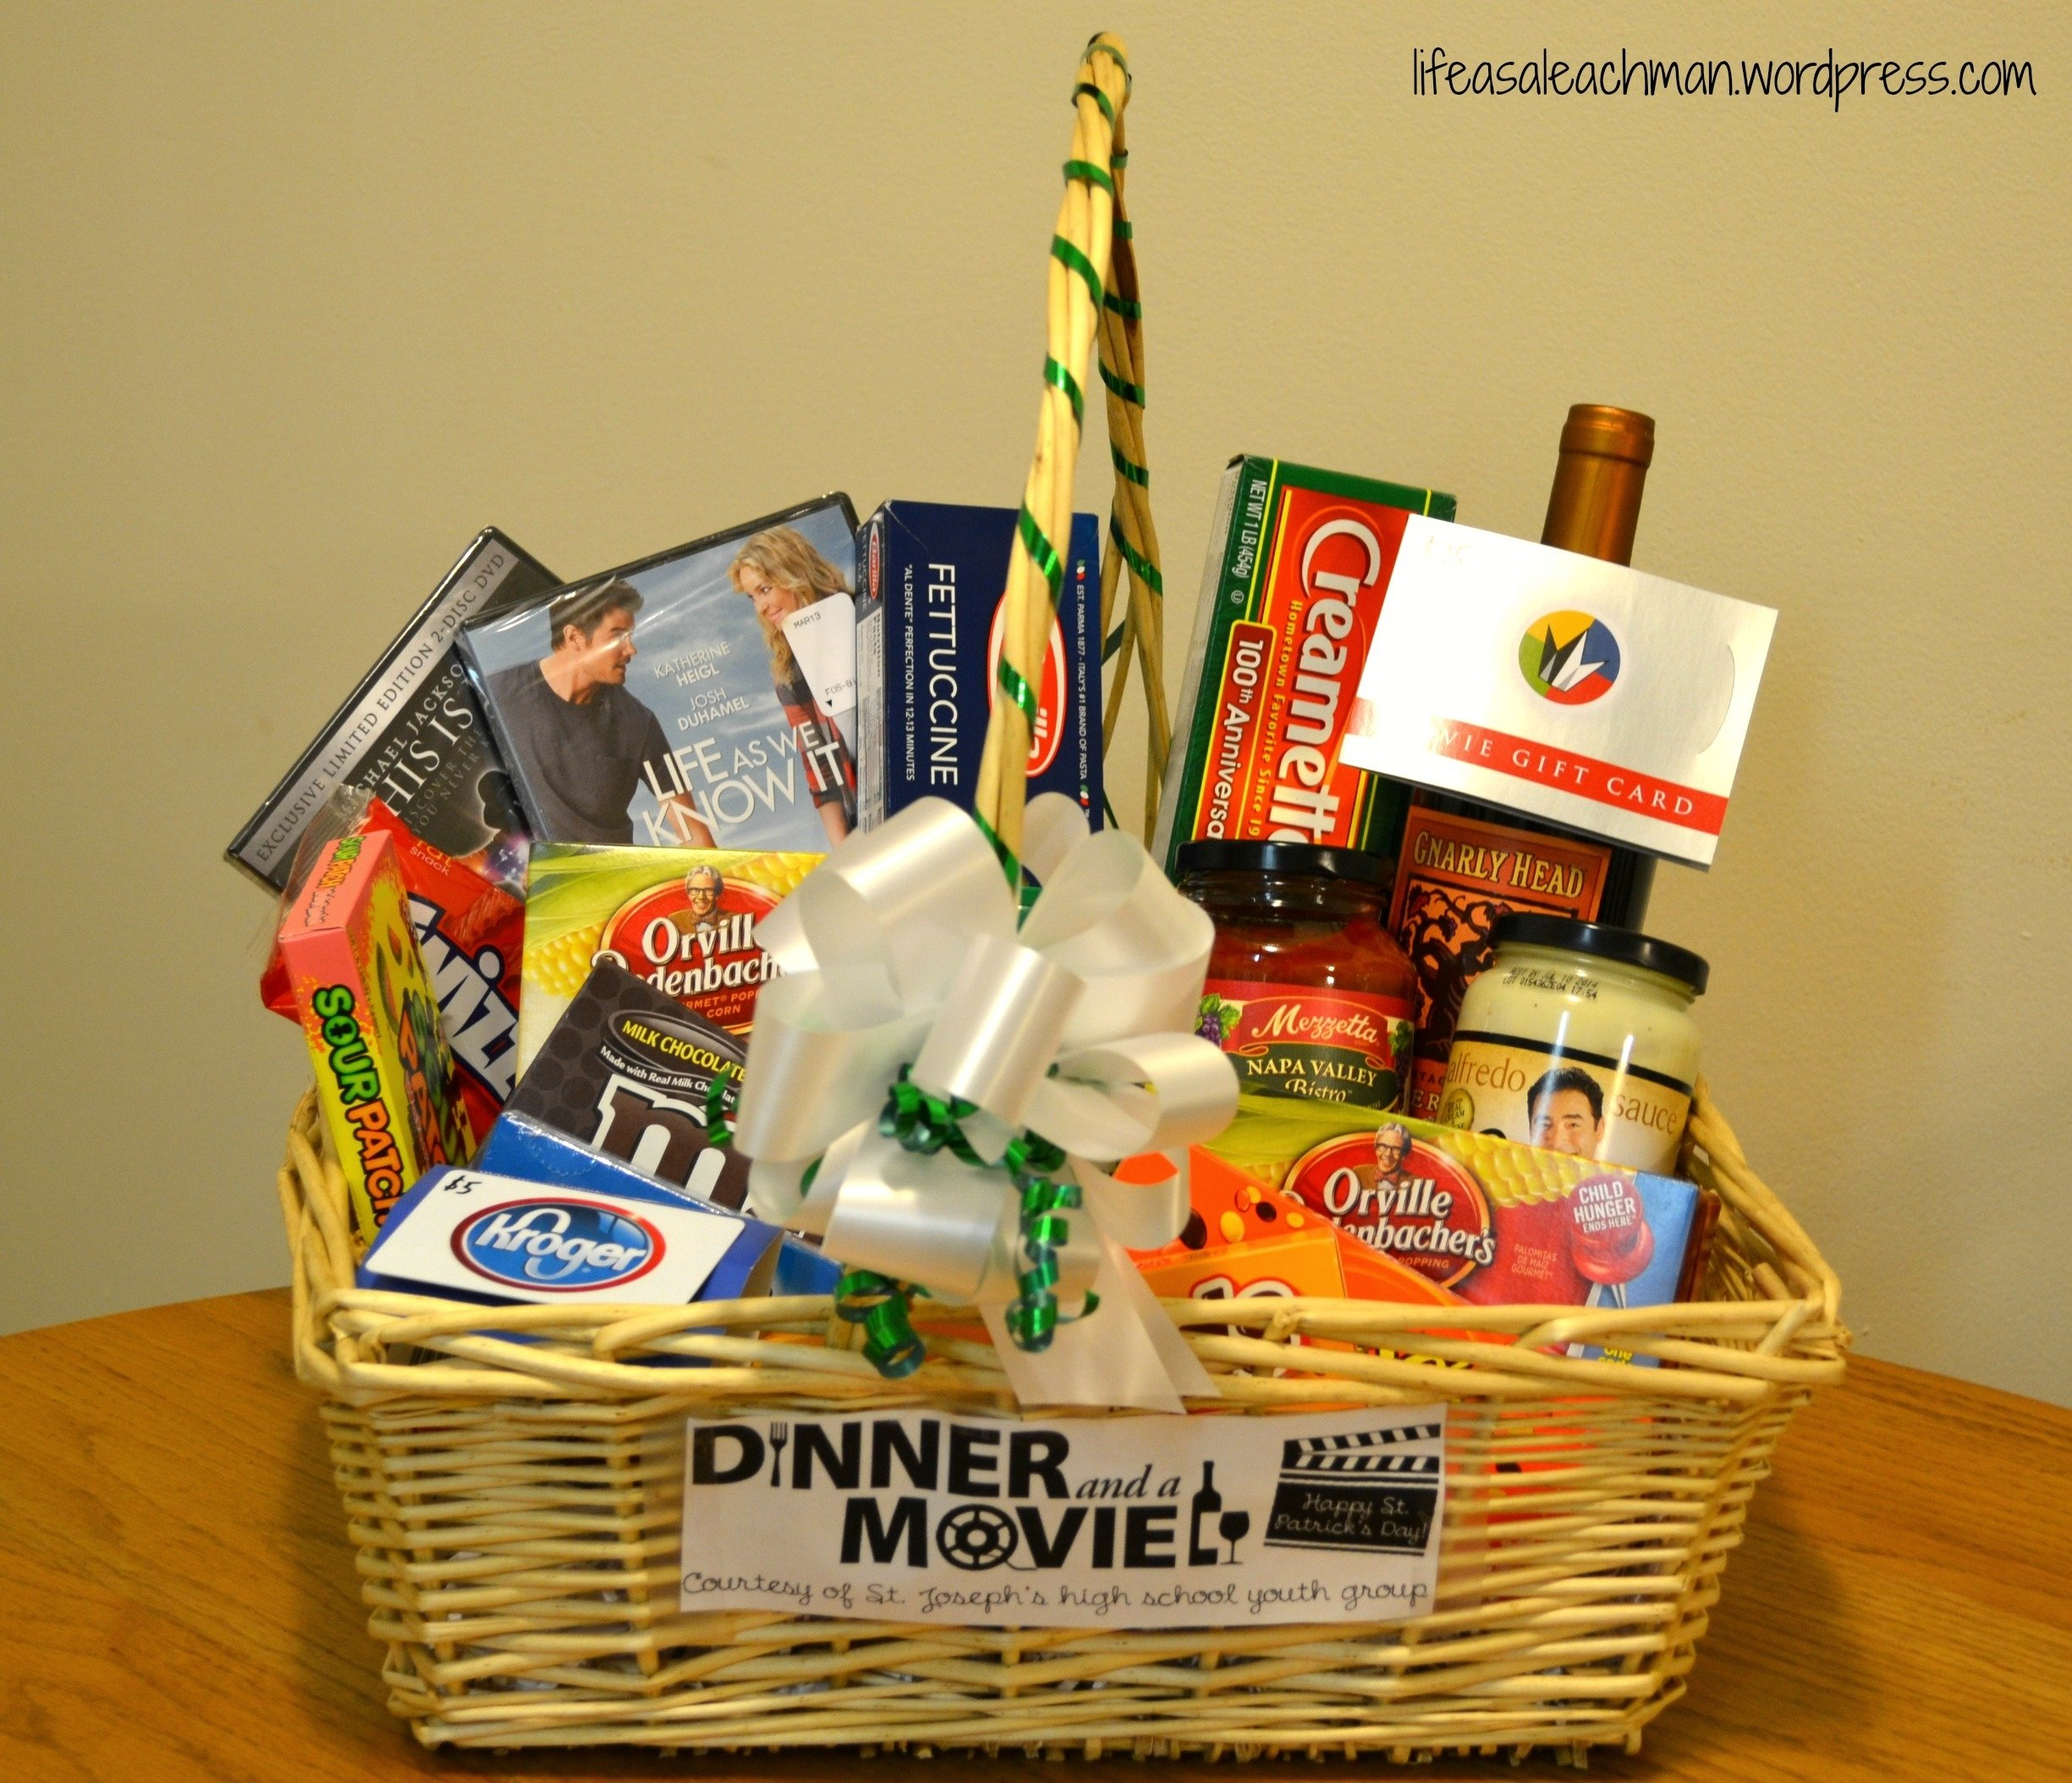 10 Trendy Gift Basket Ideas For Couples dinner a movie gift basket life as a leachman 2020